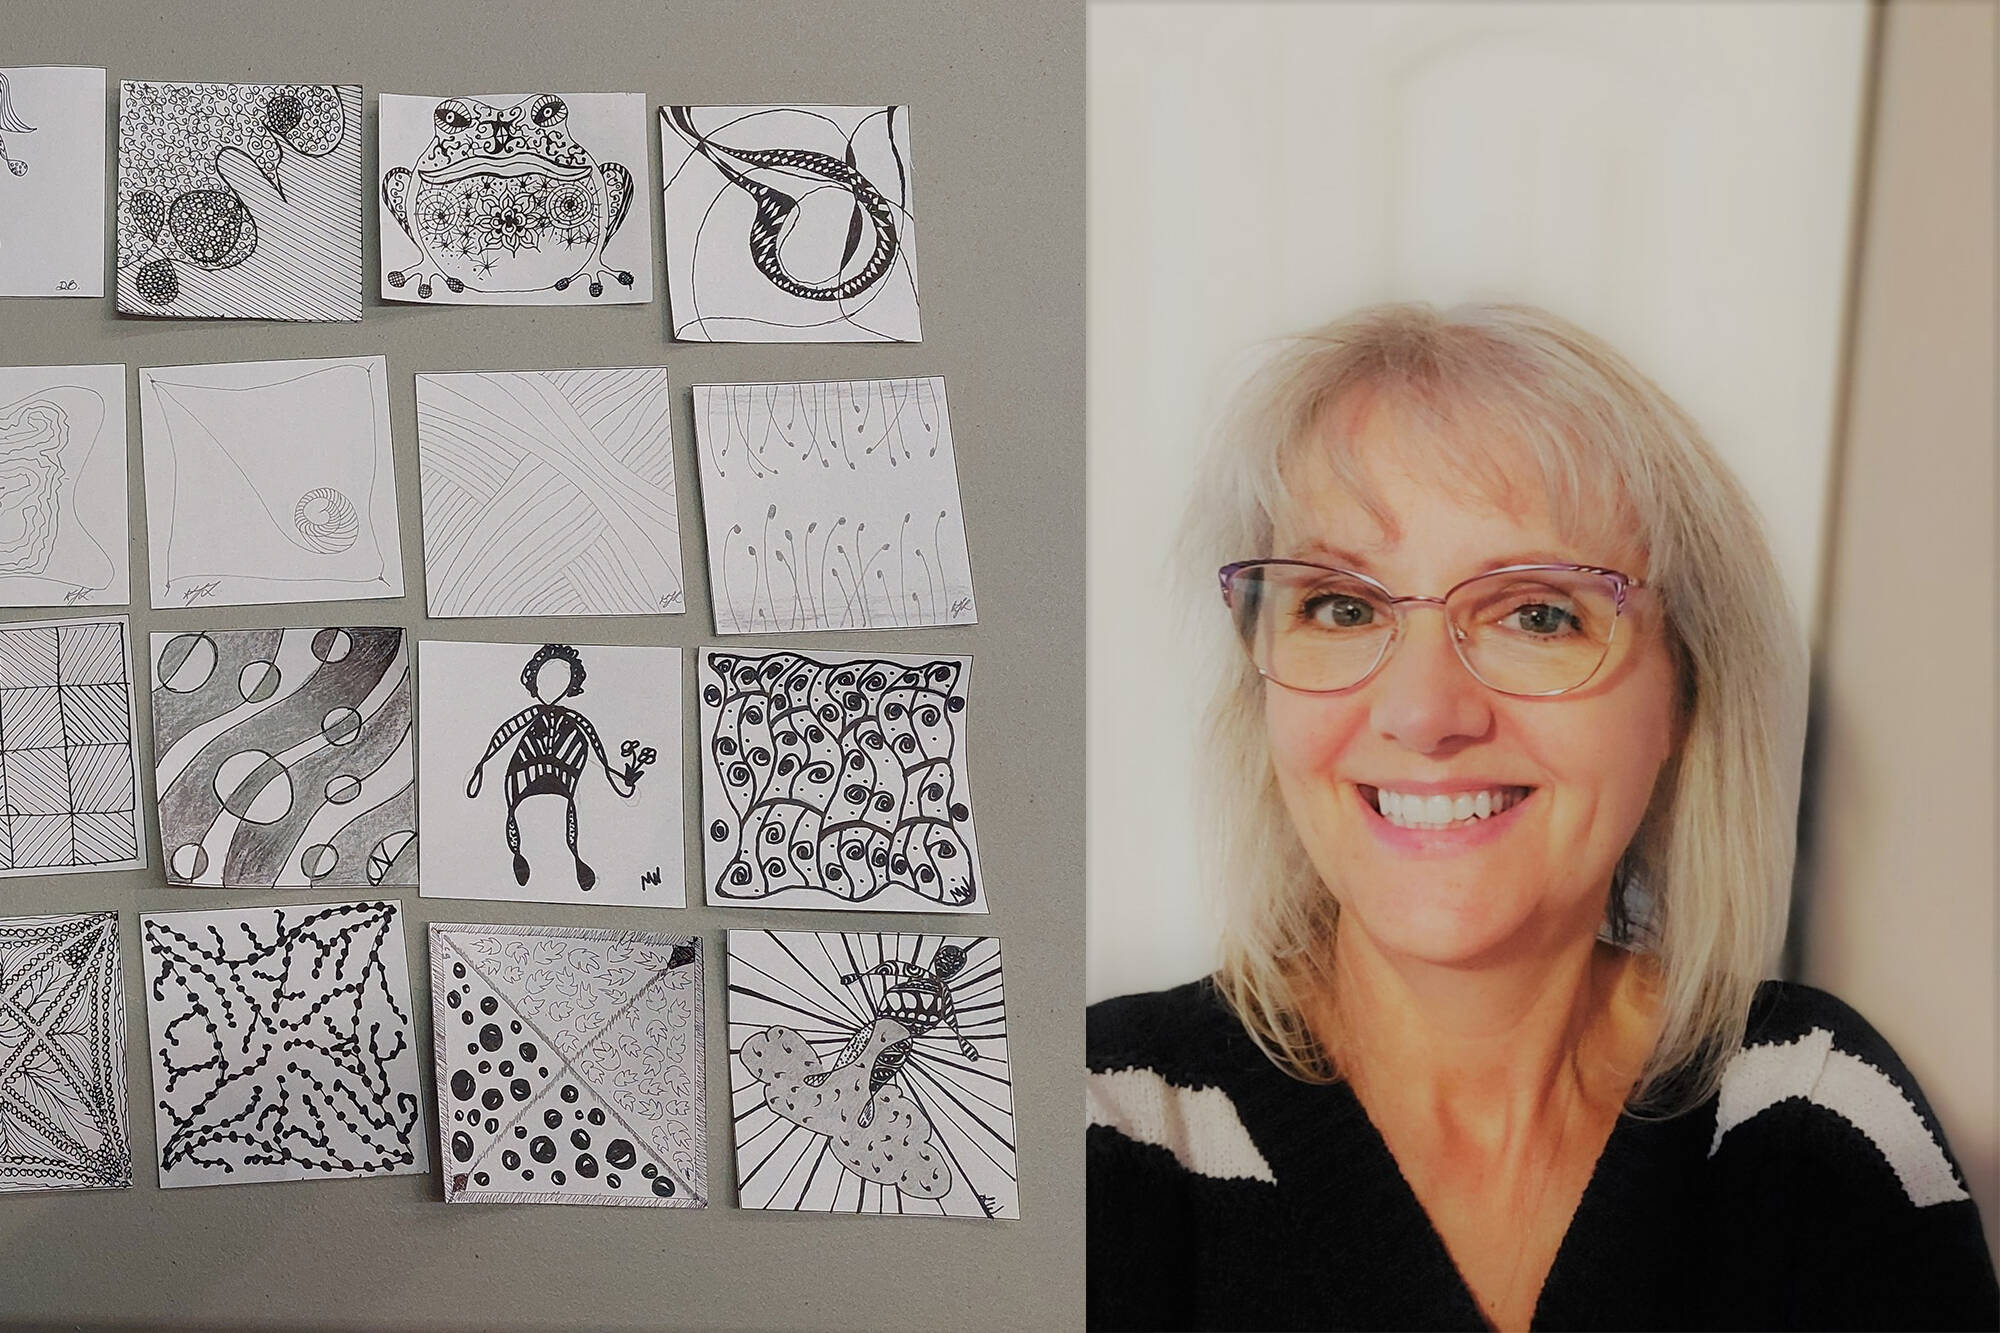 Diana Blake, pictured, leads the Eagle Valley Arts Council's new Evening Art Group. Its first meeting on Sept. 28, 2021, saw attendees create the drawings shown here. (Contributed)